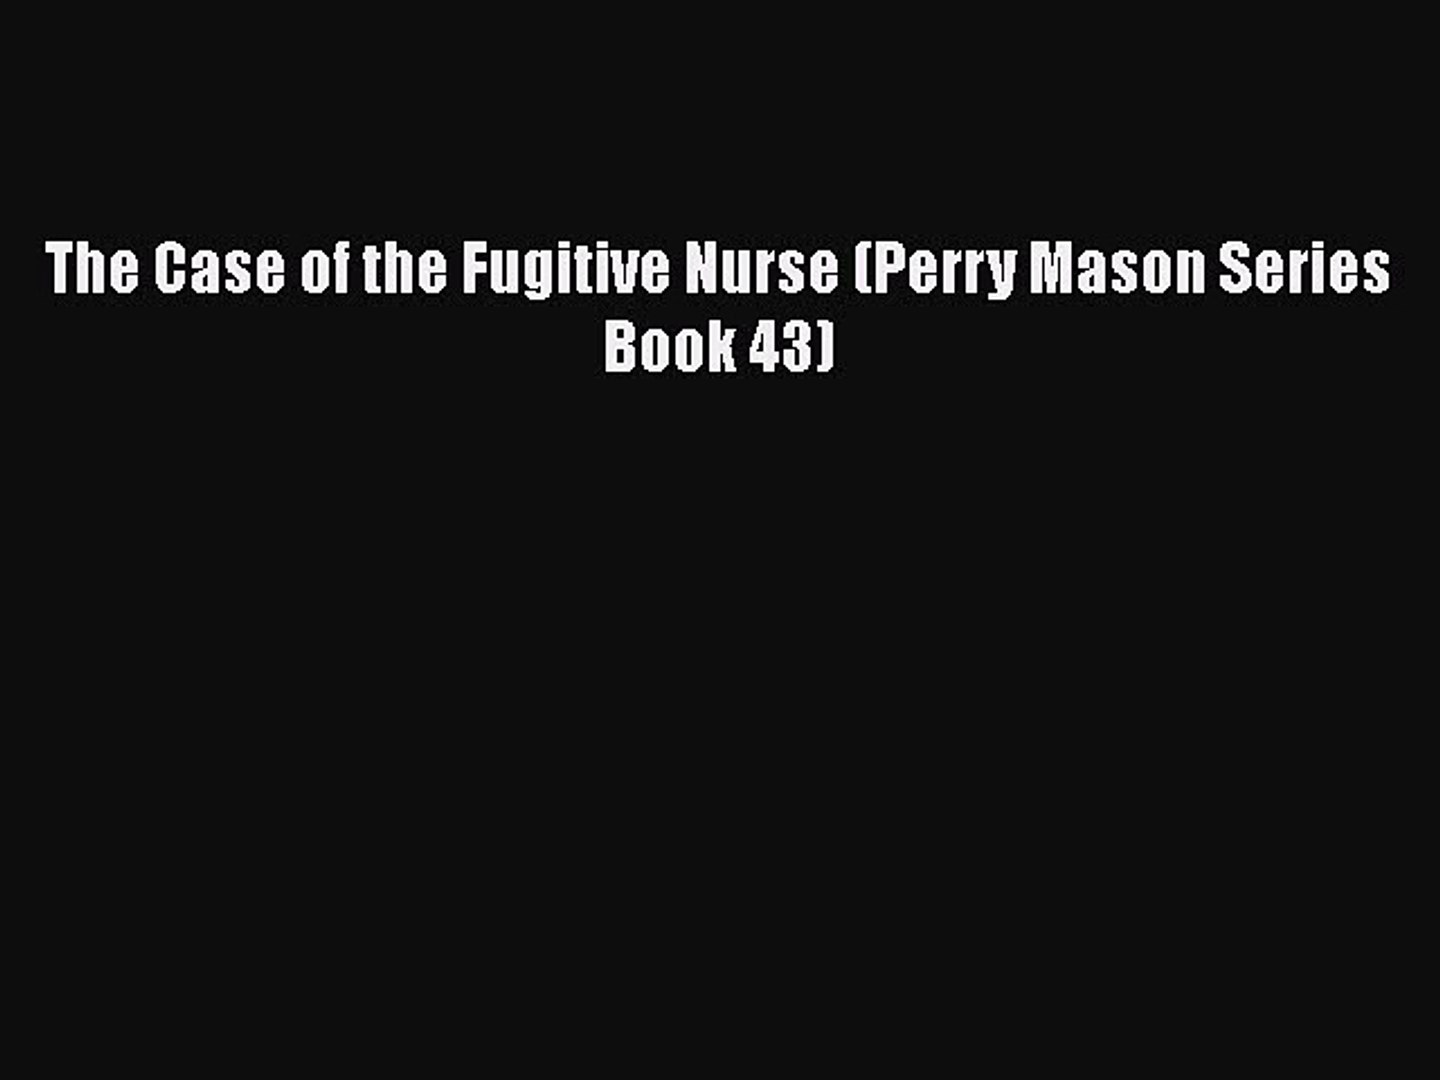 [PDF] The Case of the Fugitive Nurse (Perry Mason Series Book 43) [Download] Online